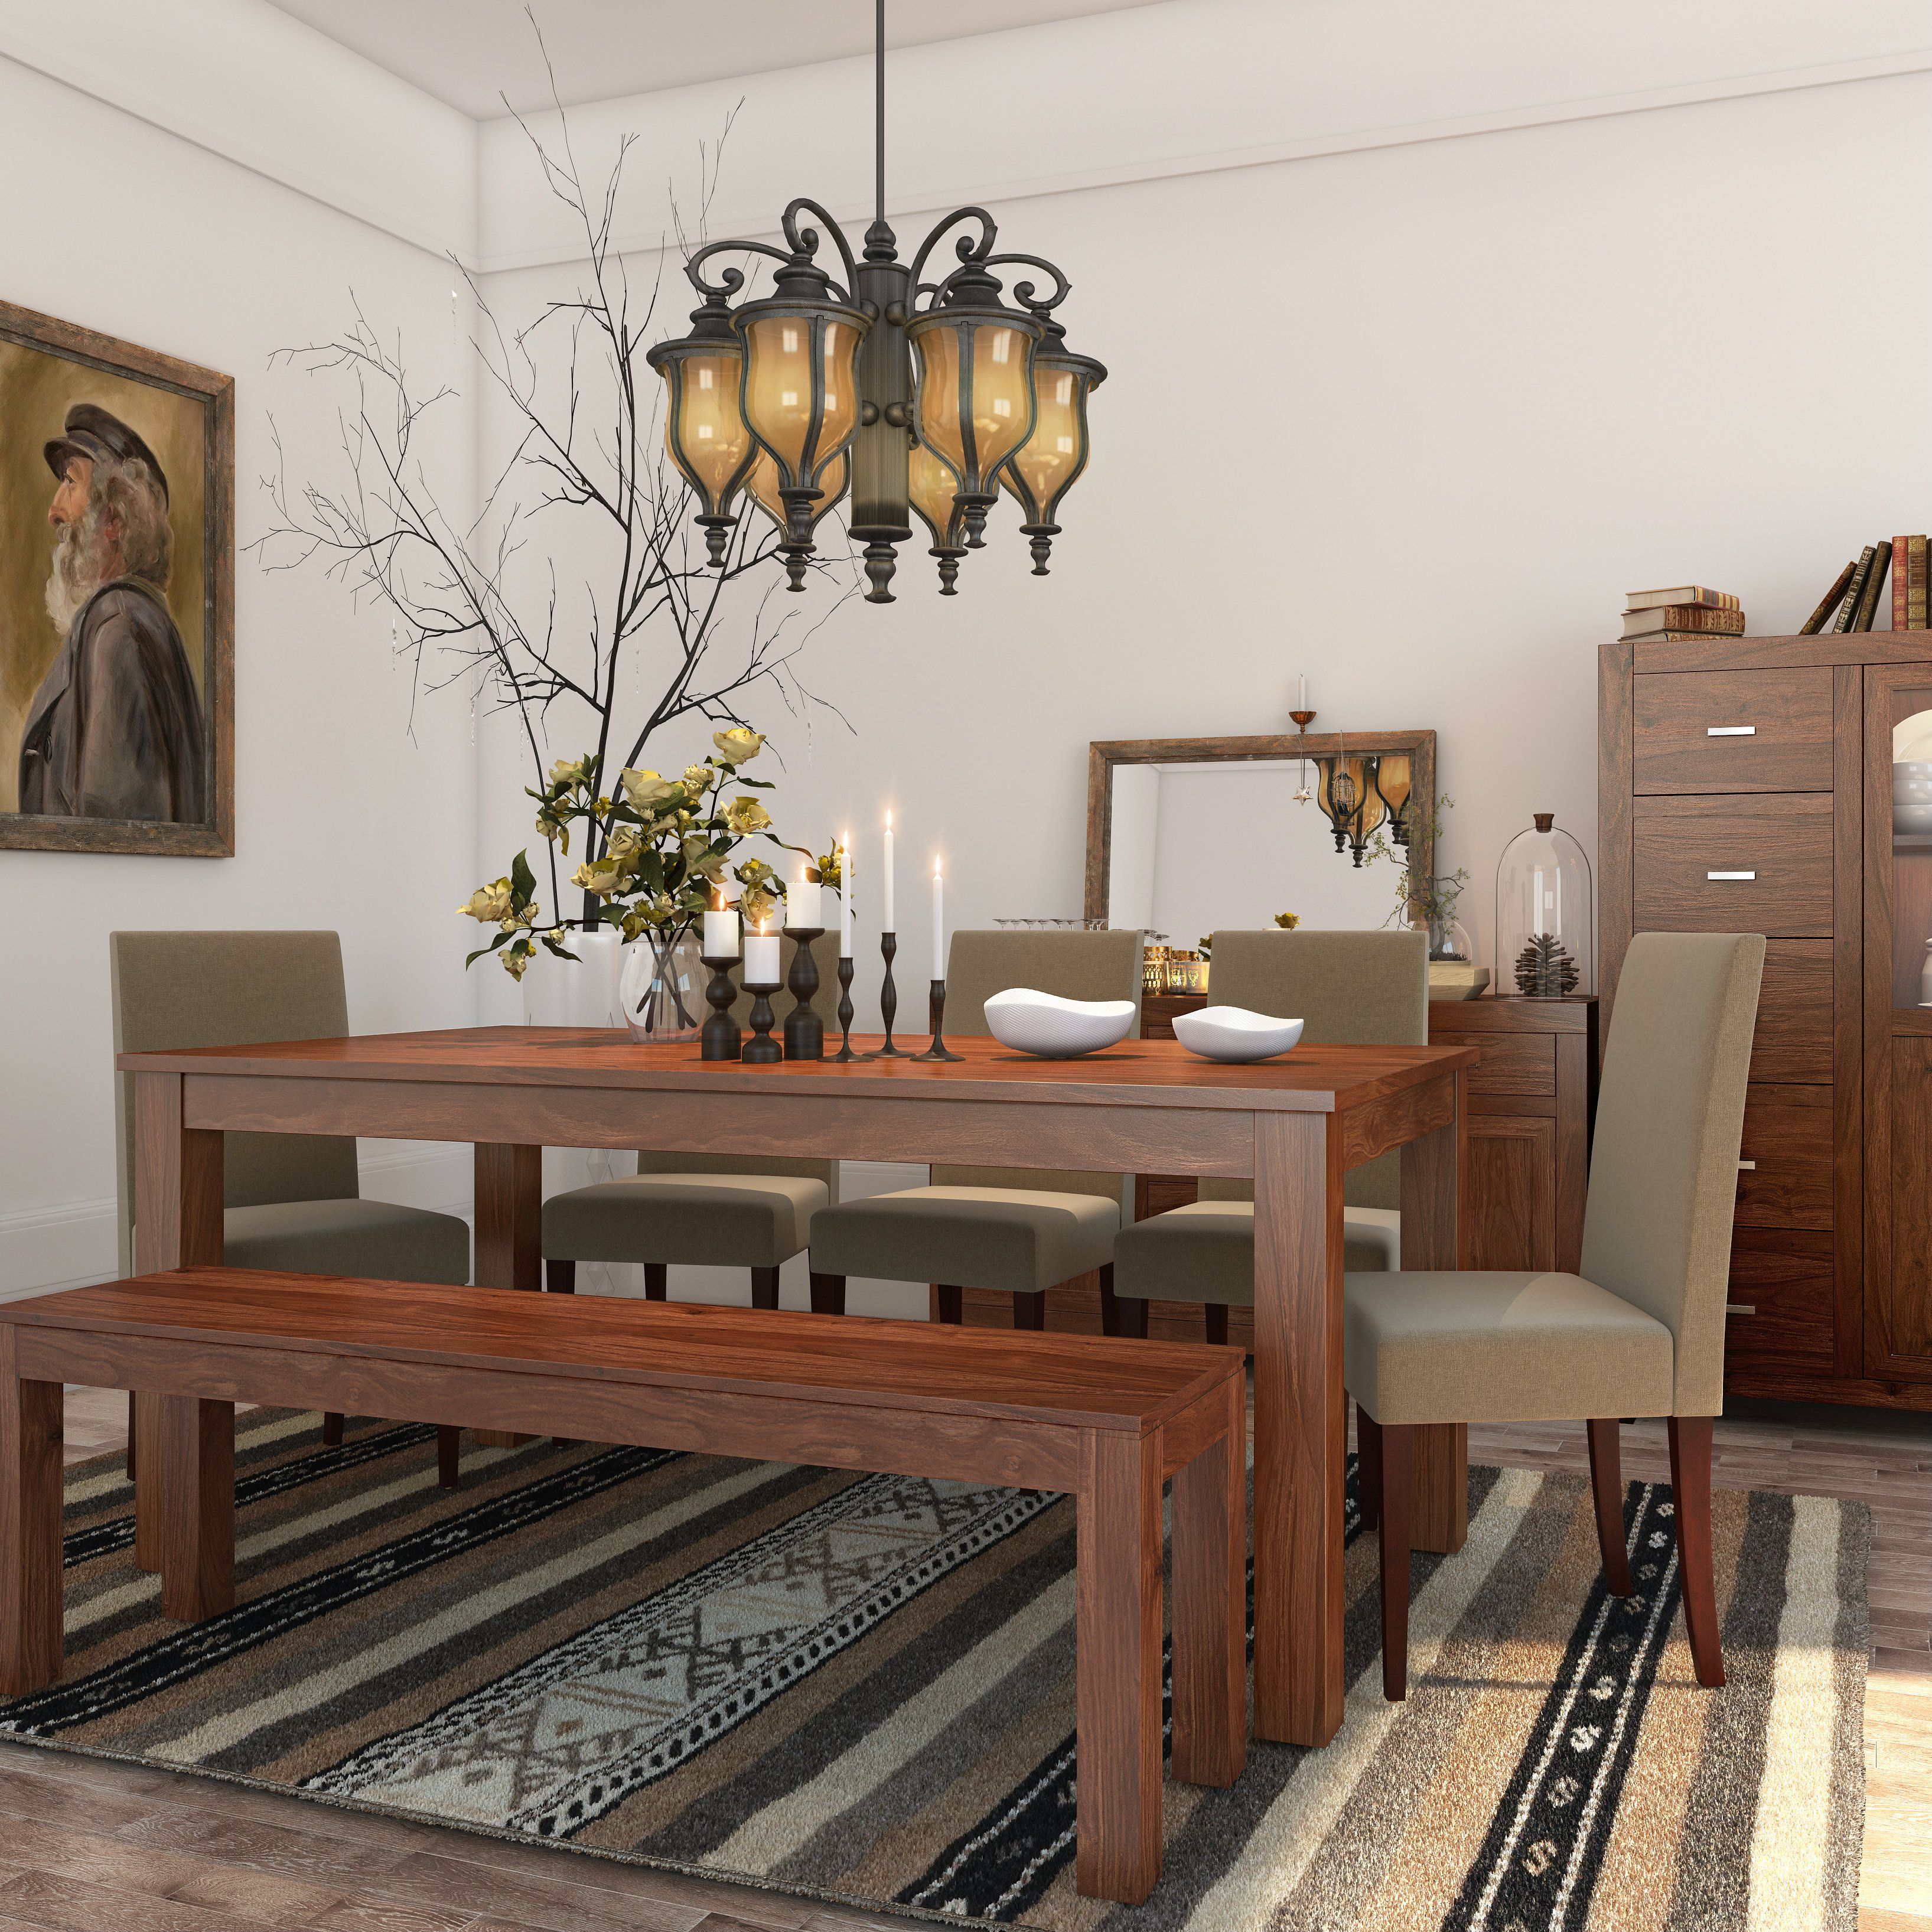 Dining room table with upholstered bench  Edgy chandelier  wooden accents ud winner dining room  Dining Rooms